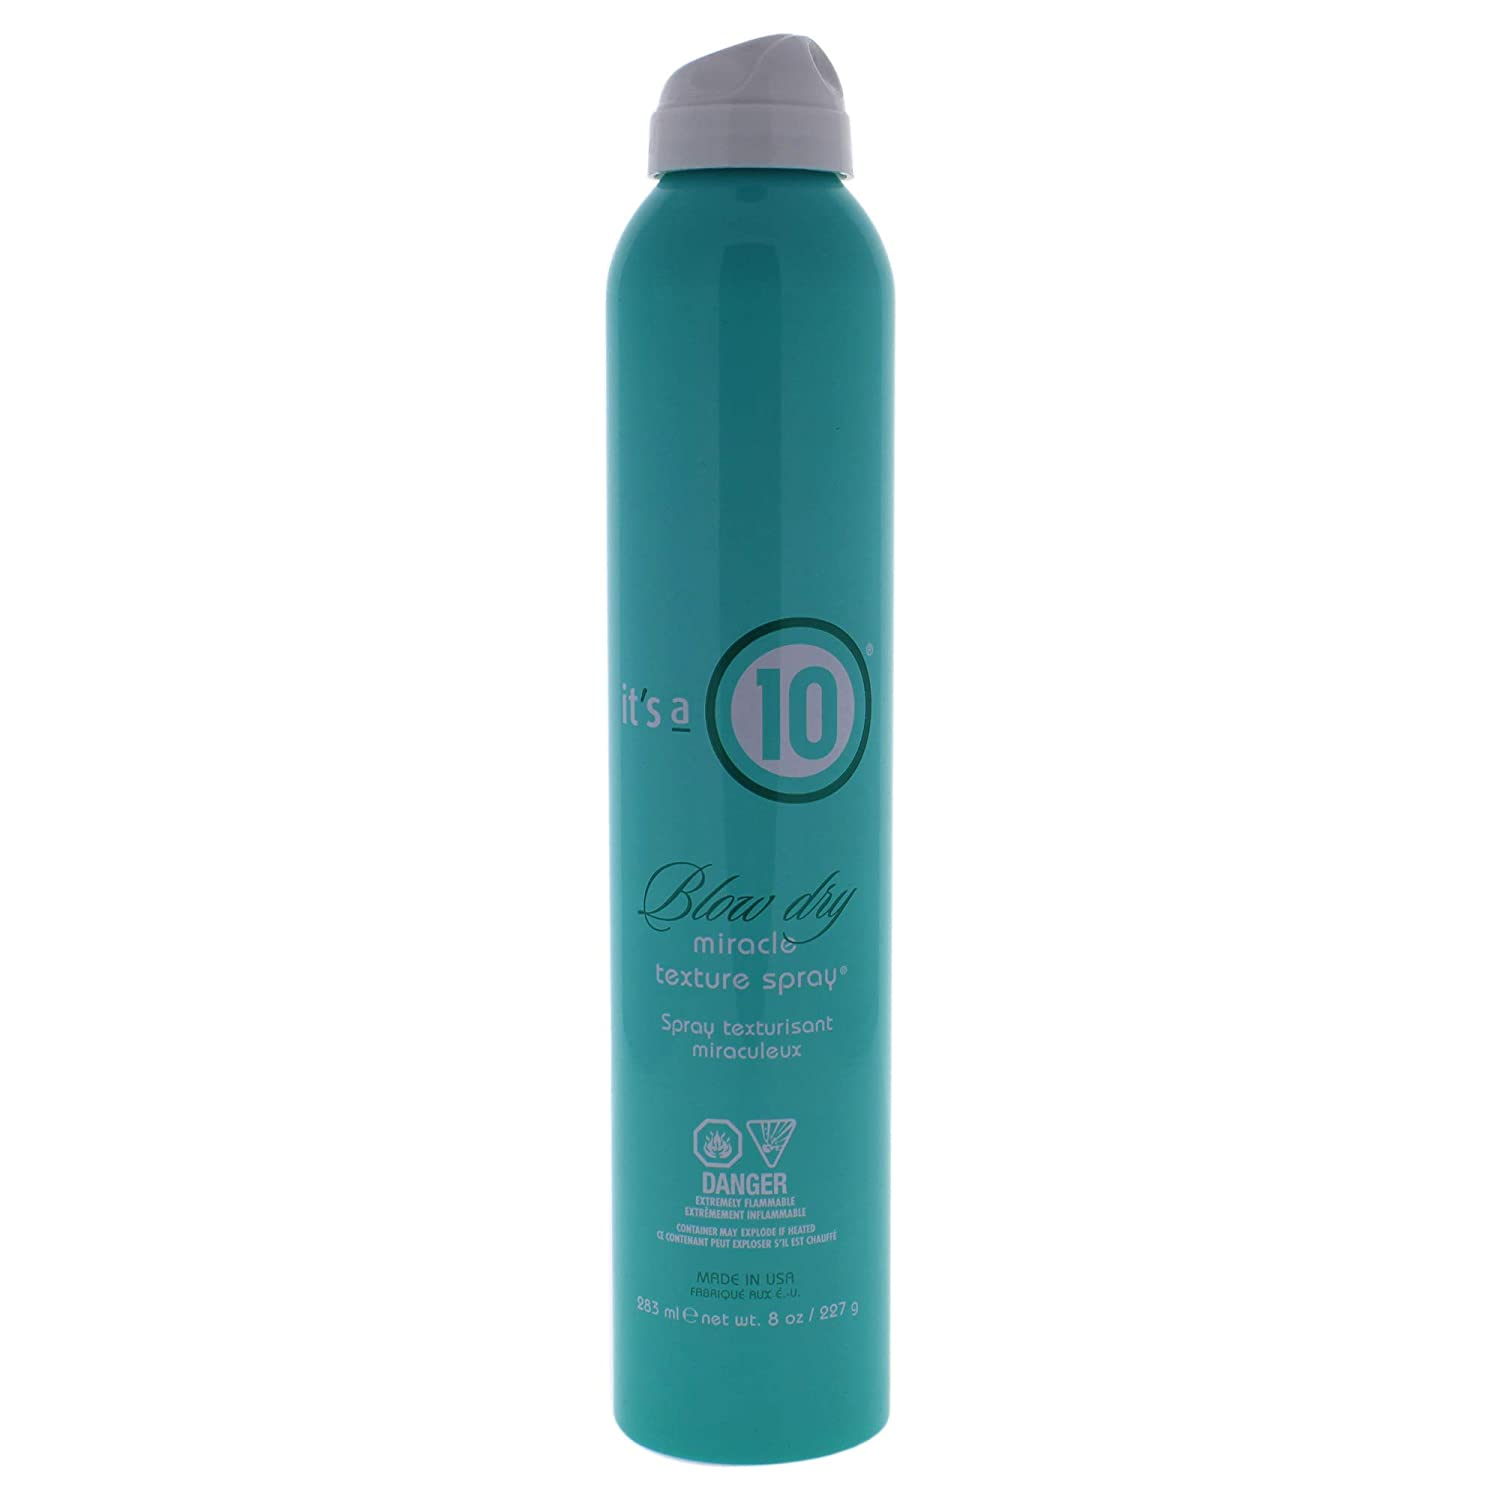 Its A 10 Blow Dry Miracle Texture Spray - 8oz